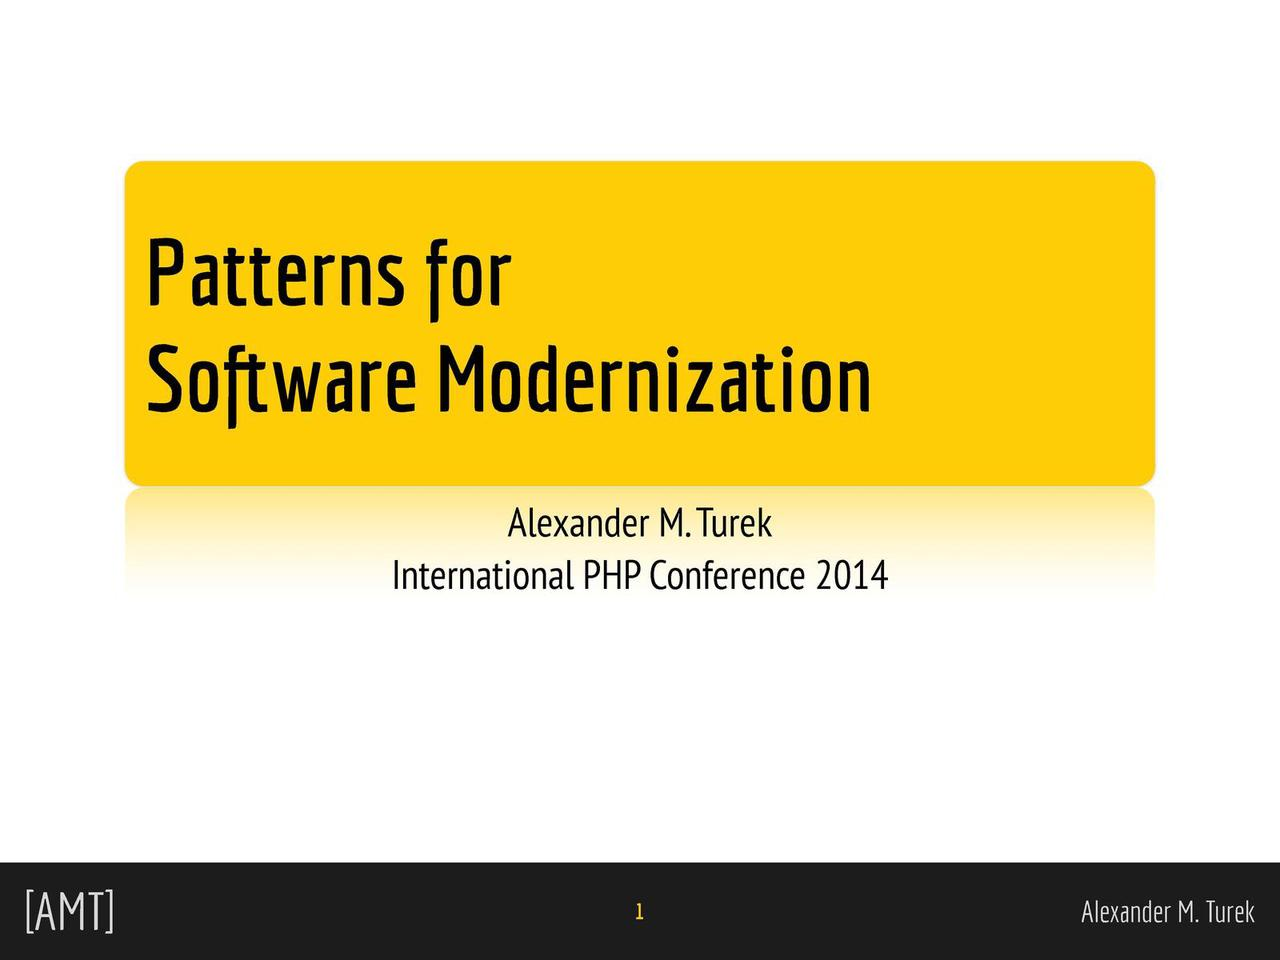 Patterns for Software Modernization (IPC14)